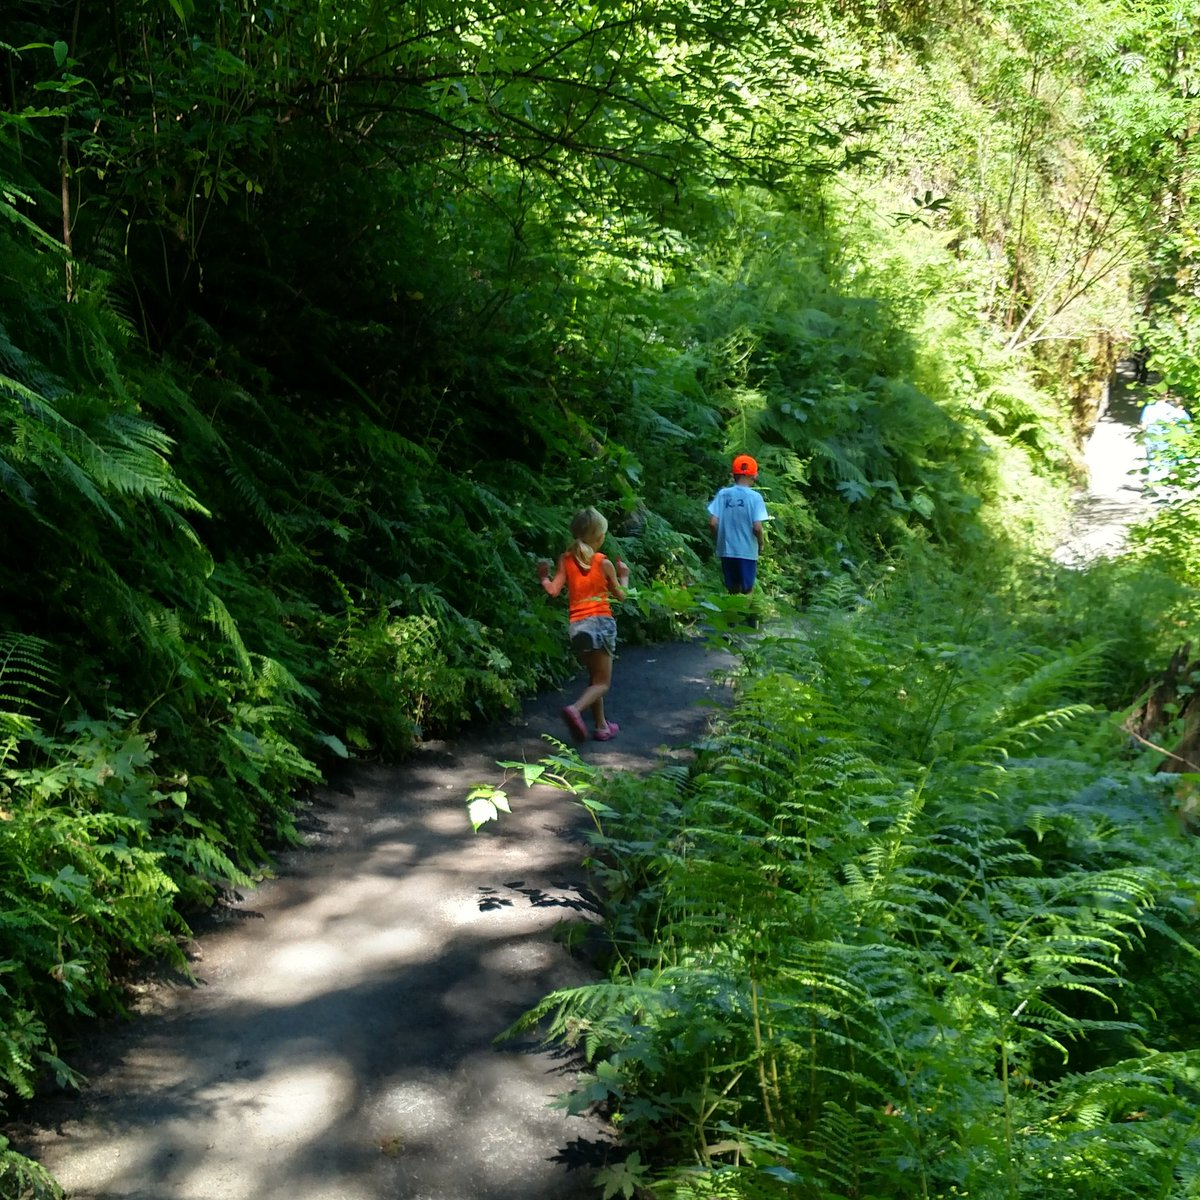 #Hiking with these munchkins outside Portland. #nofilter #pnw #trail #optoutside #neverstopexploring #peoplewhooutdoor #adventurekids<br>http://pic.twitter.com/6Vfabqtomh